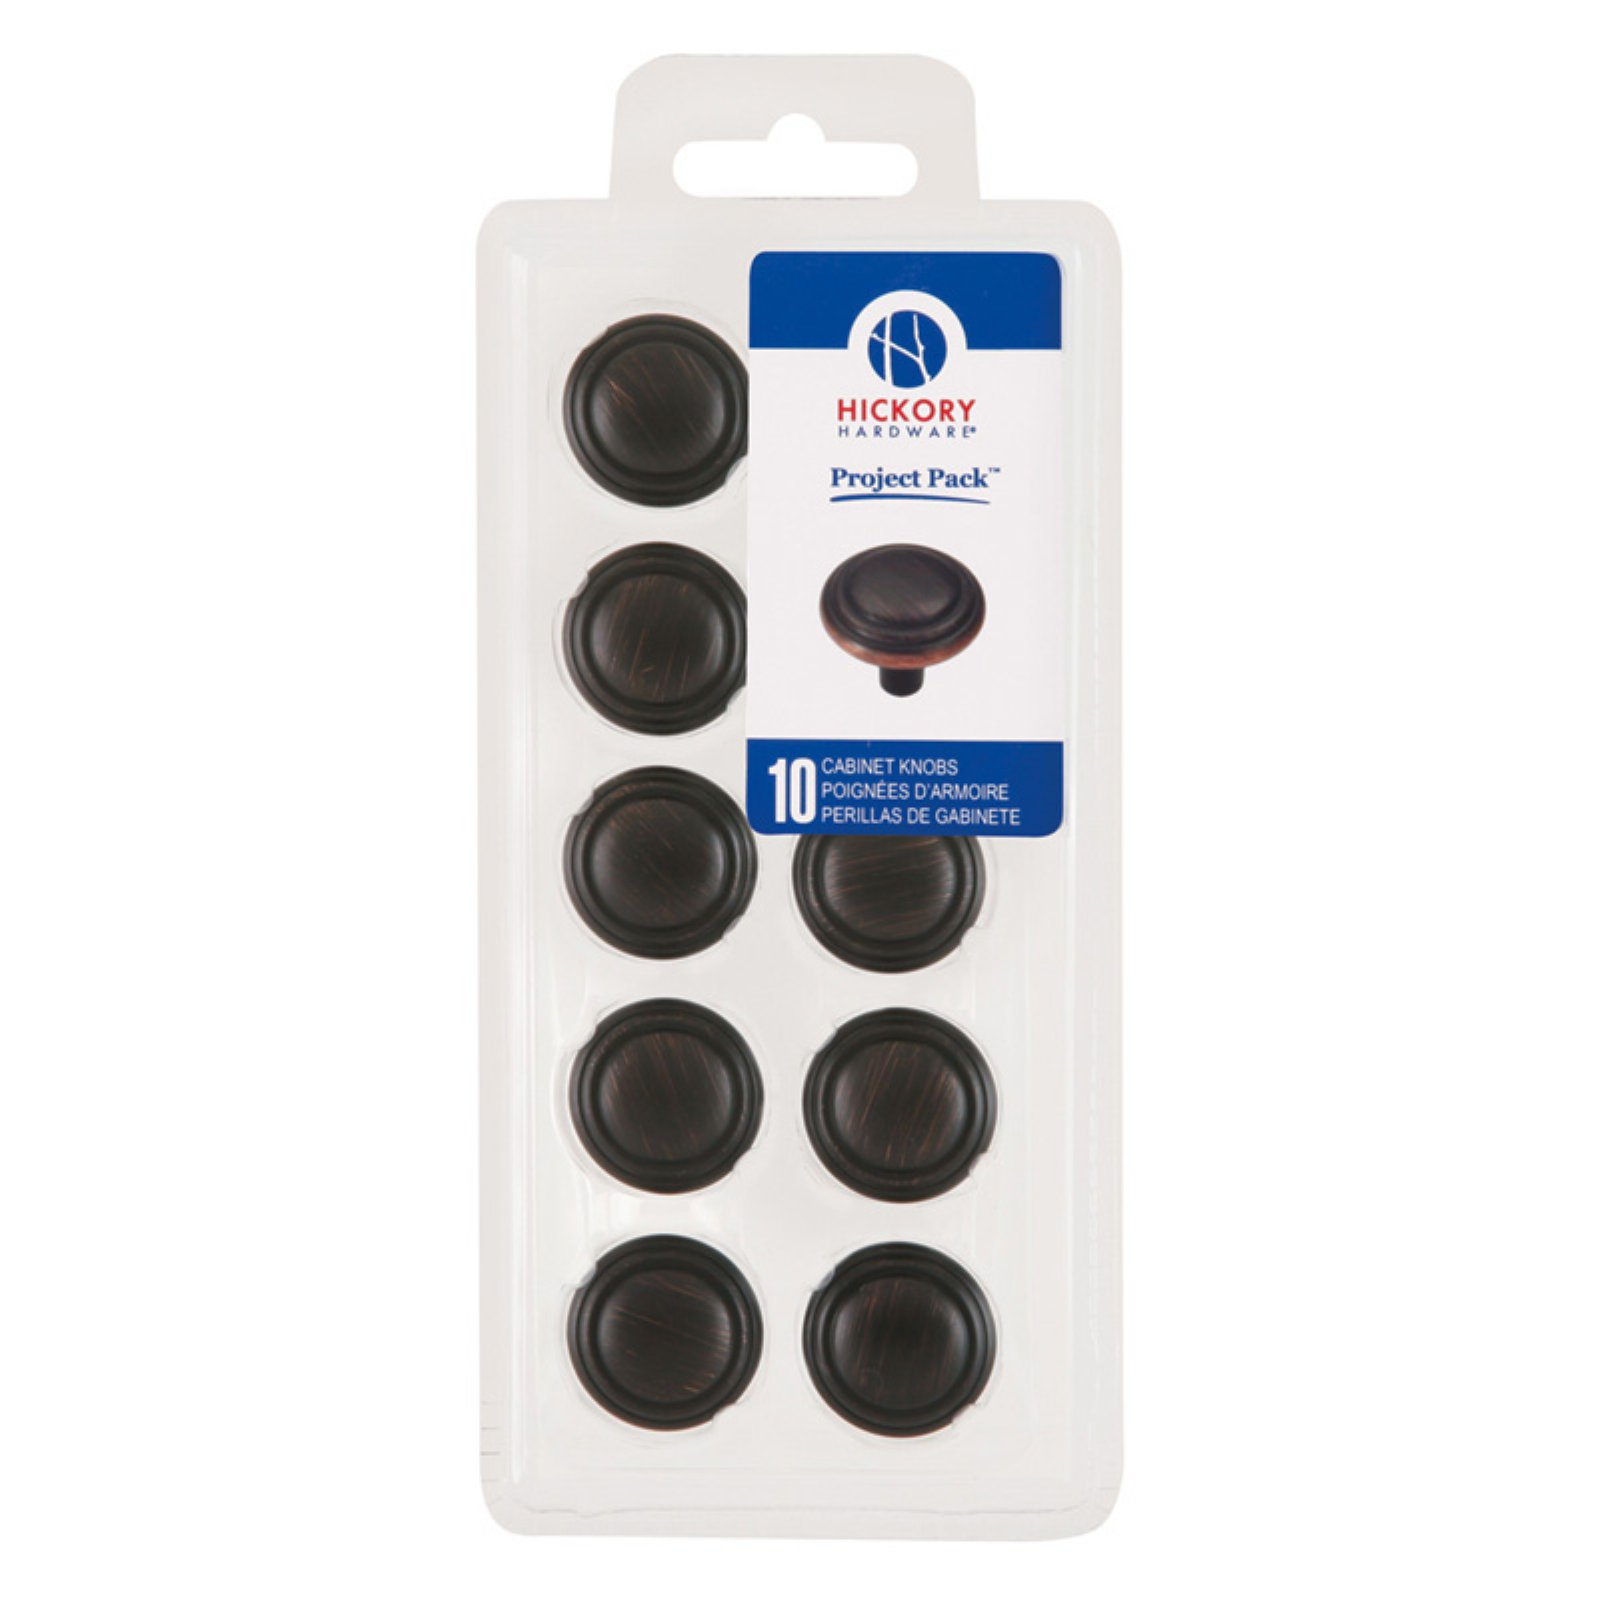 Hickory Hardware Project Packs 1.13 in. Cabinet Knobs - Set of 10